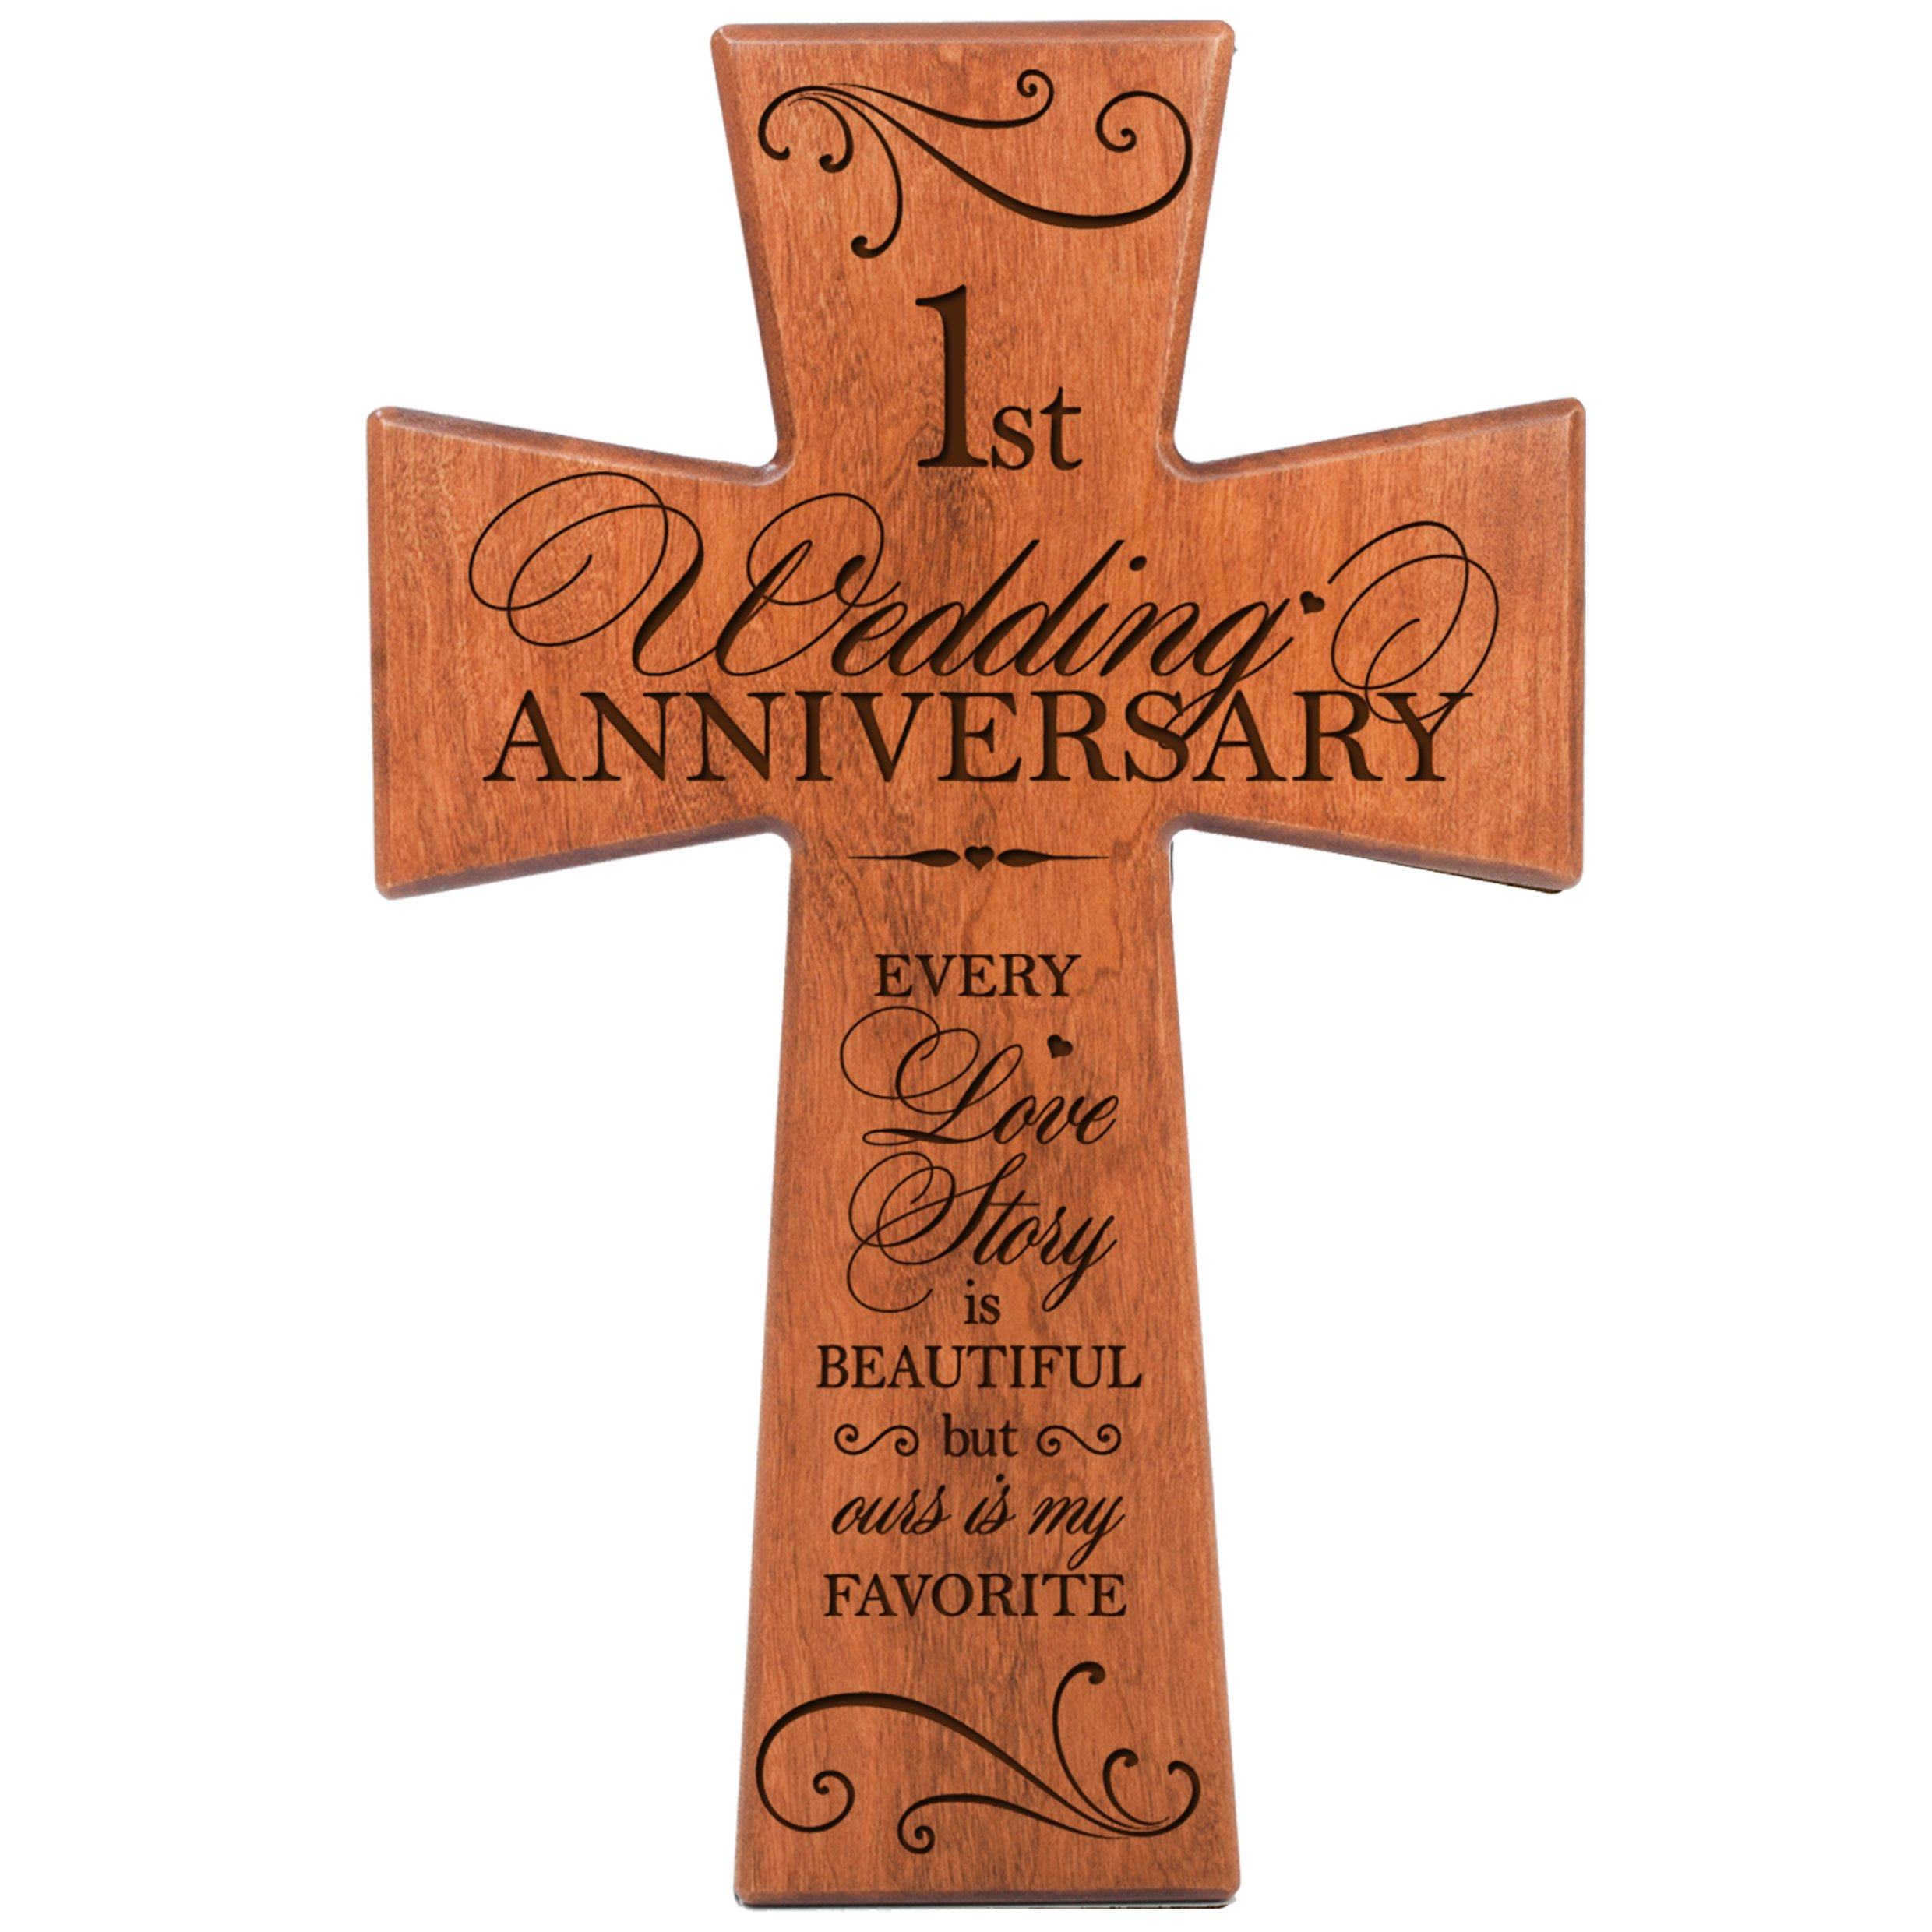 LifeSong Milestones 1st Wedding Anniversary Cherry Wood Wall Cross Gift for Couple,1st for Her,1st Wedding for Him Every Love Story is Beautiful but Ours is My Favorite # 62864